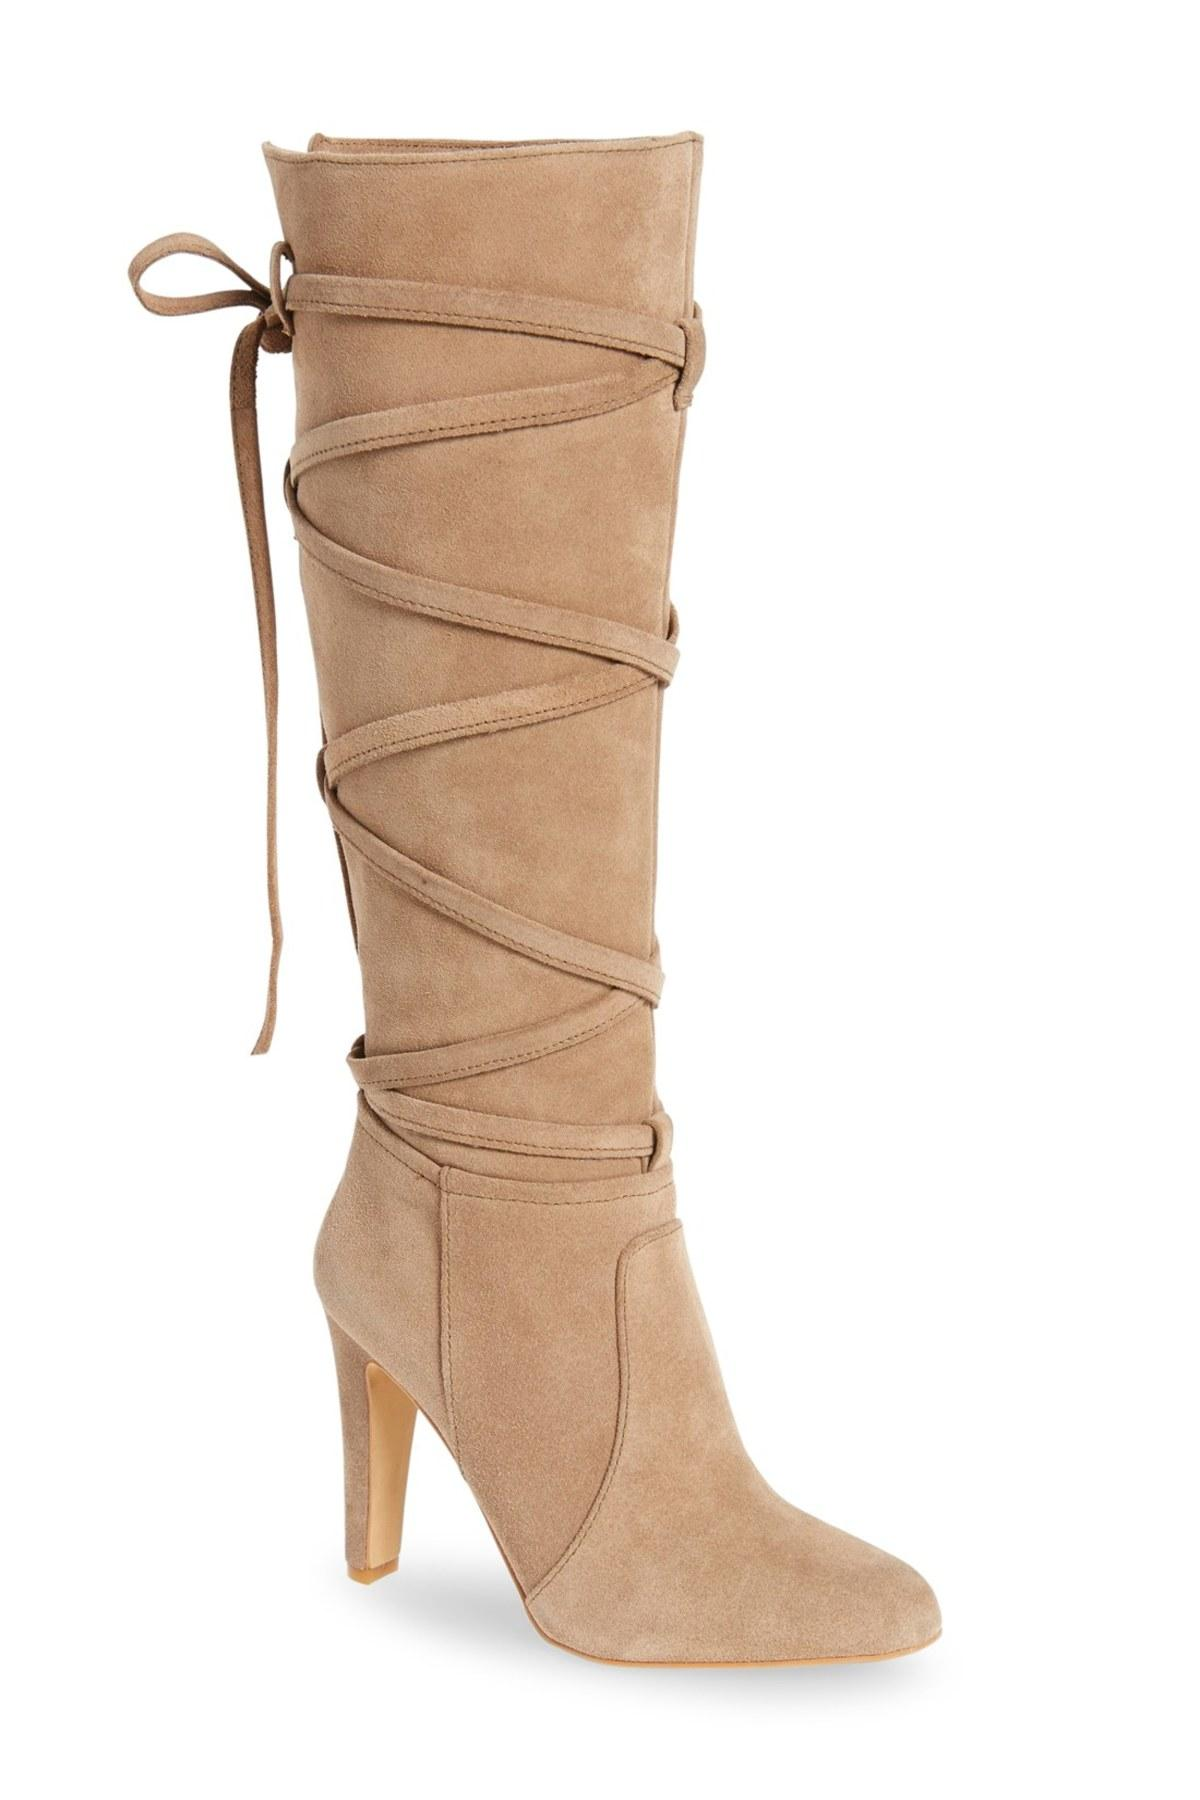 40e1c2072a7 Lyst - Vince Camuto Millay Tall Boot in Natural